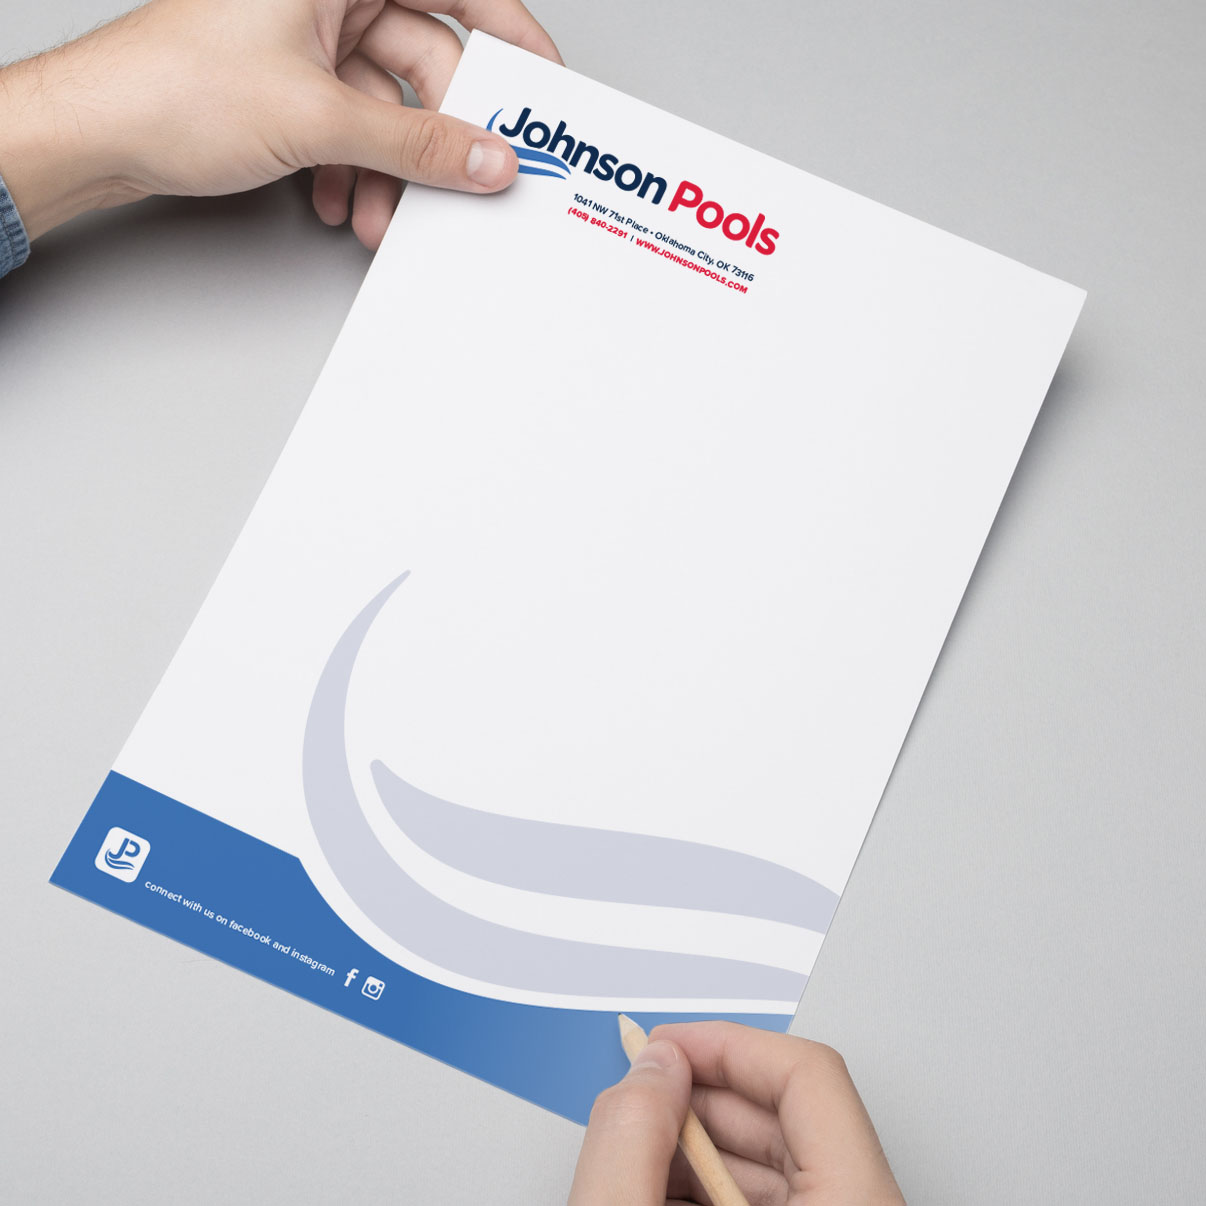 Letterhead Design - Johnson Pools